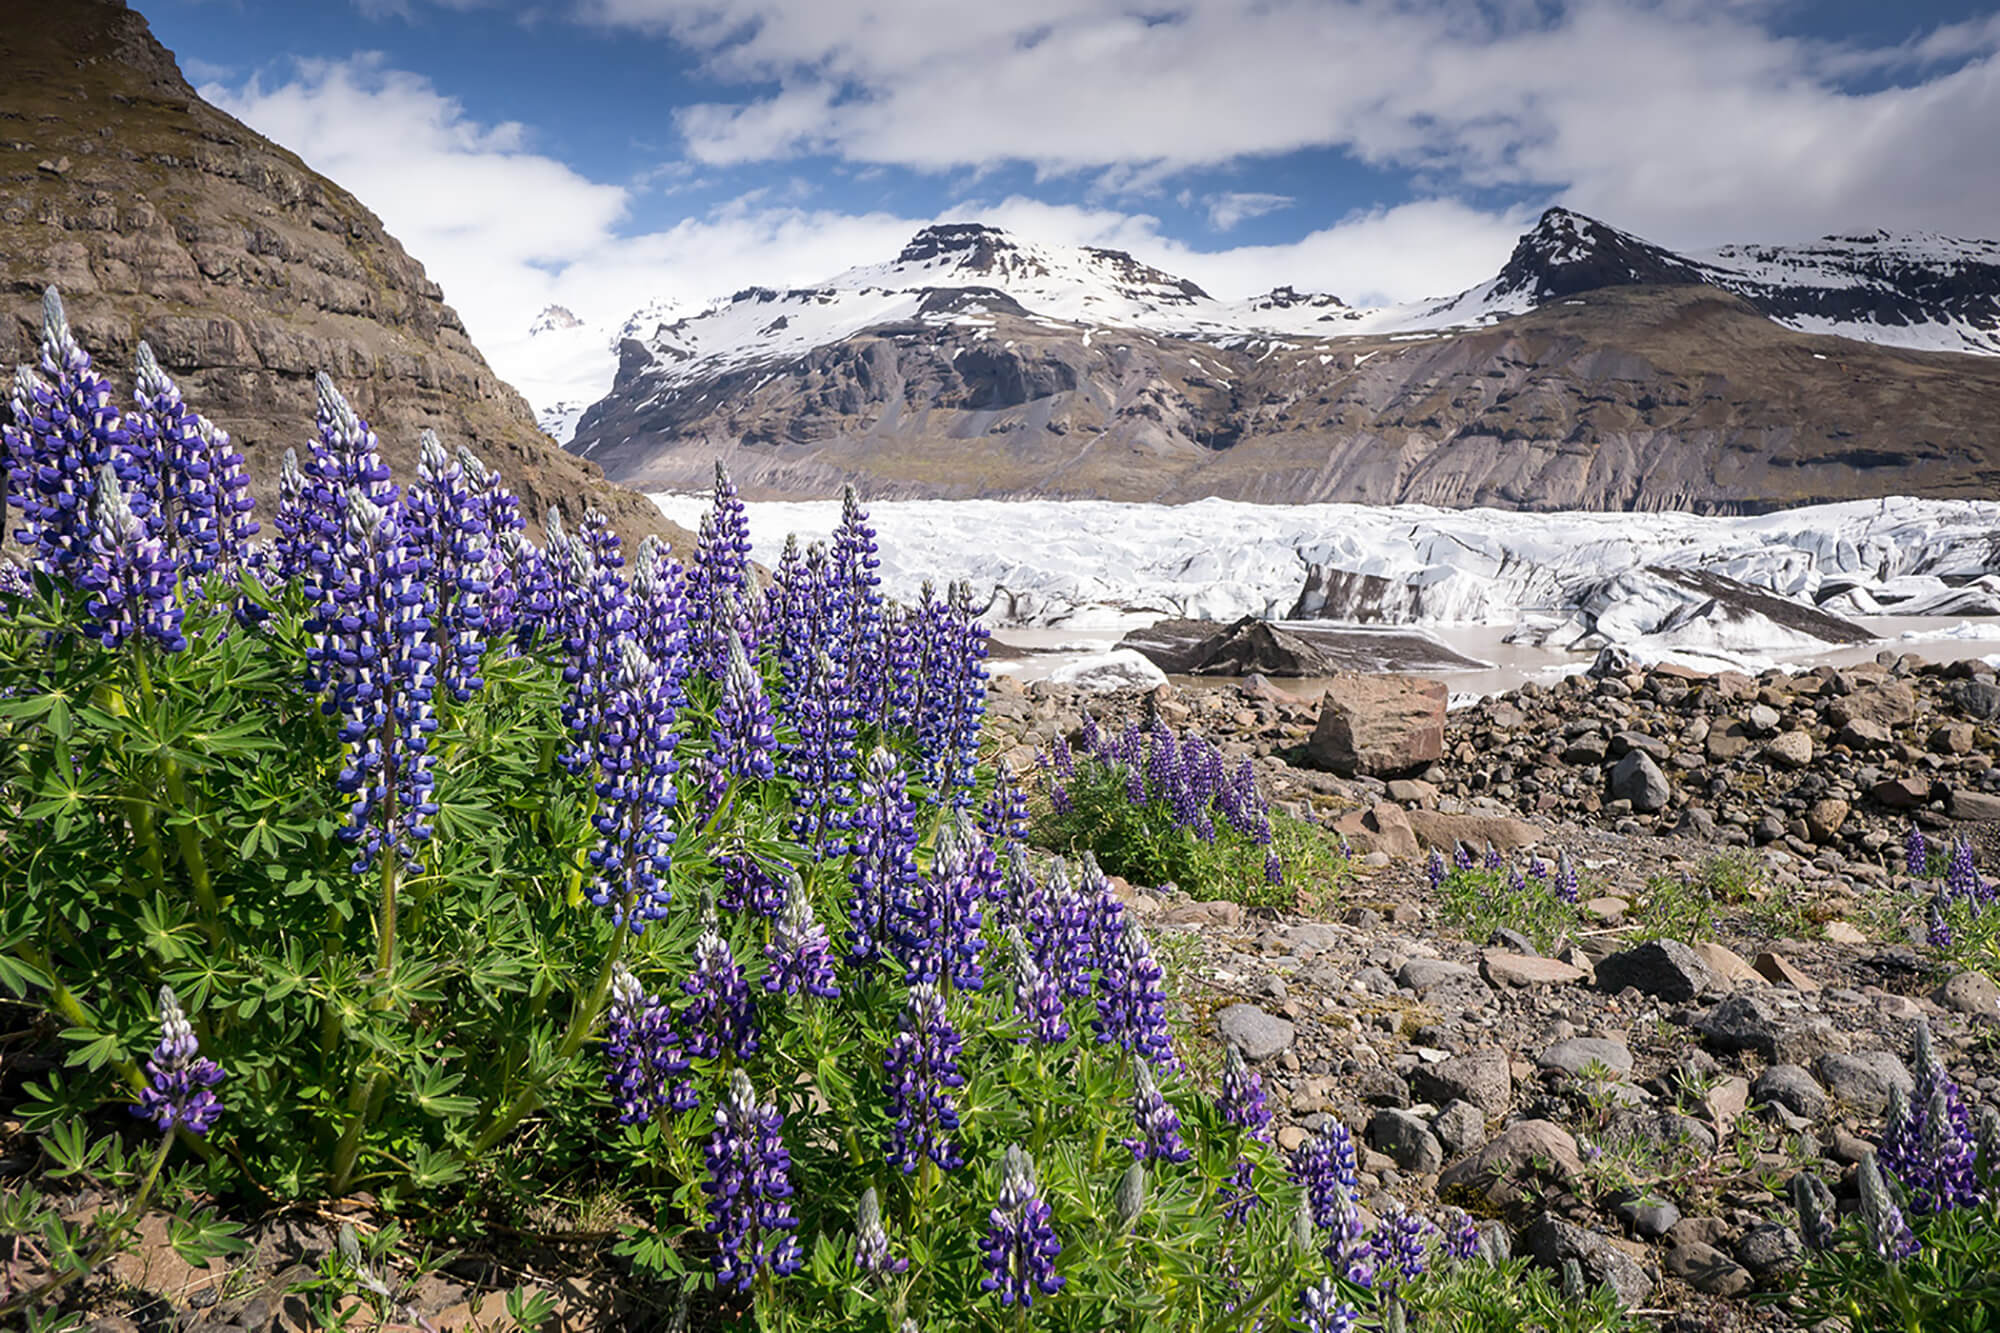 Lupins colonising the barren land left by a receding glacier